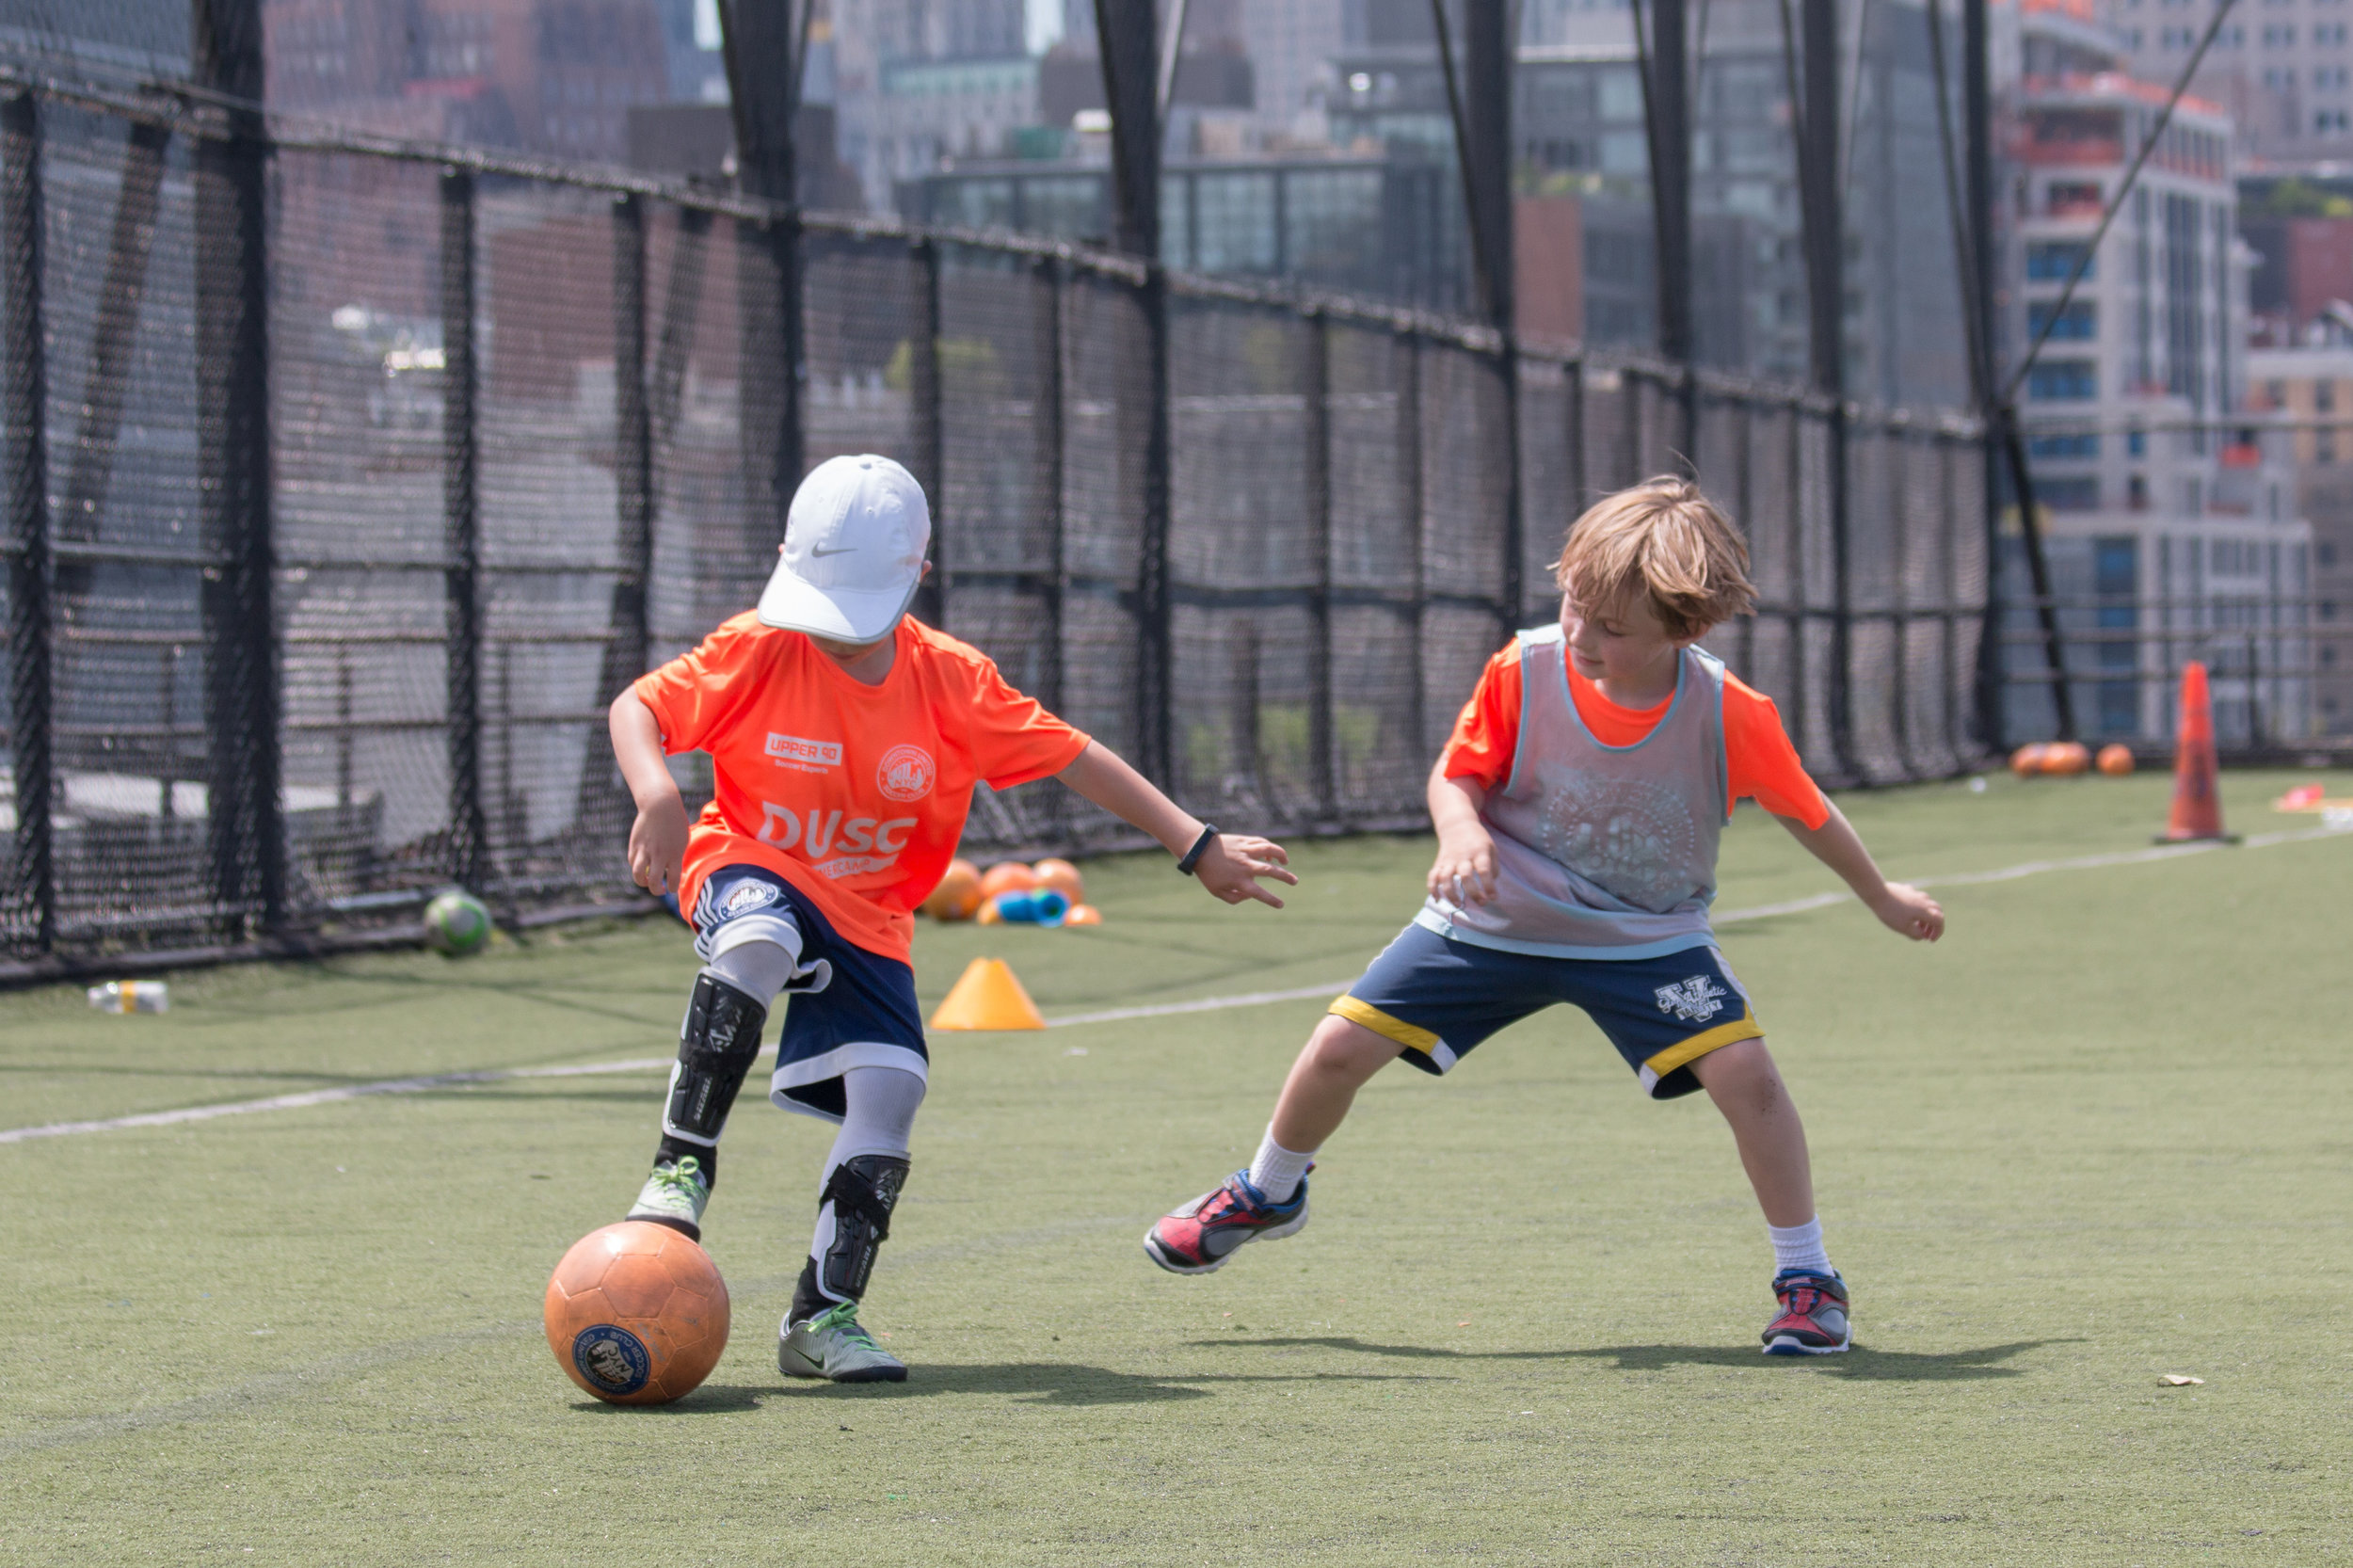 DUSC-downtown-united-soccer-club-youth-new-york-city-summer-camp–17–04.jpg